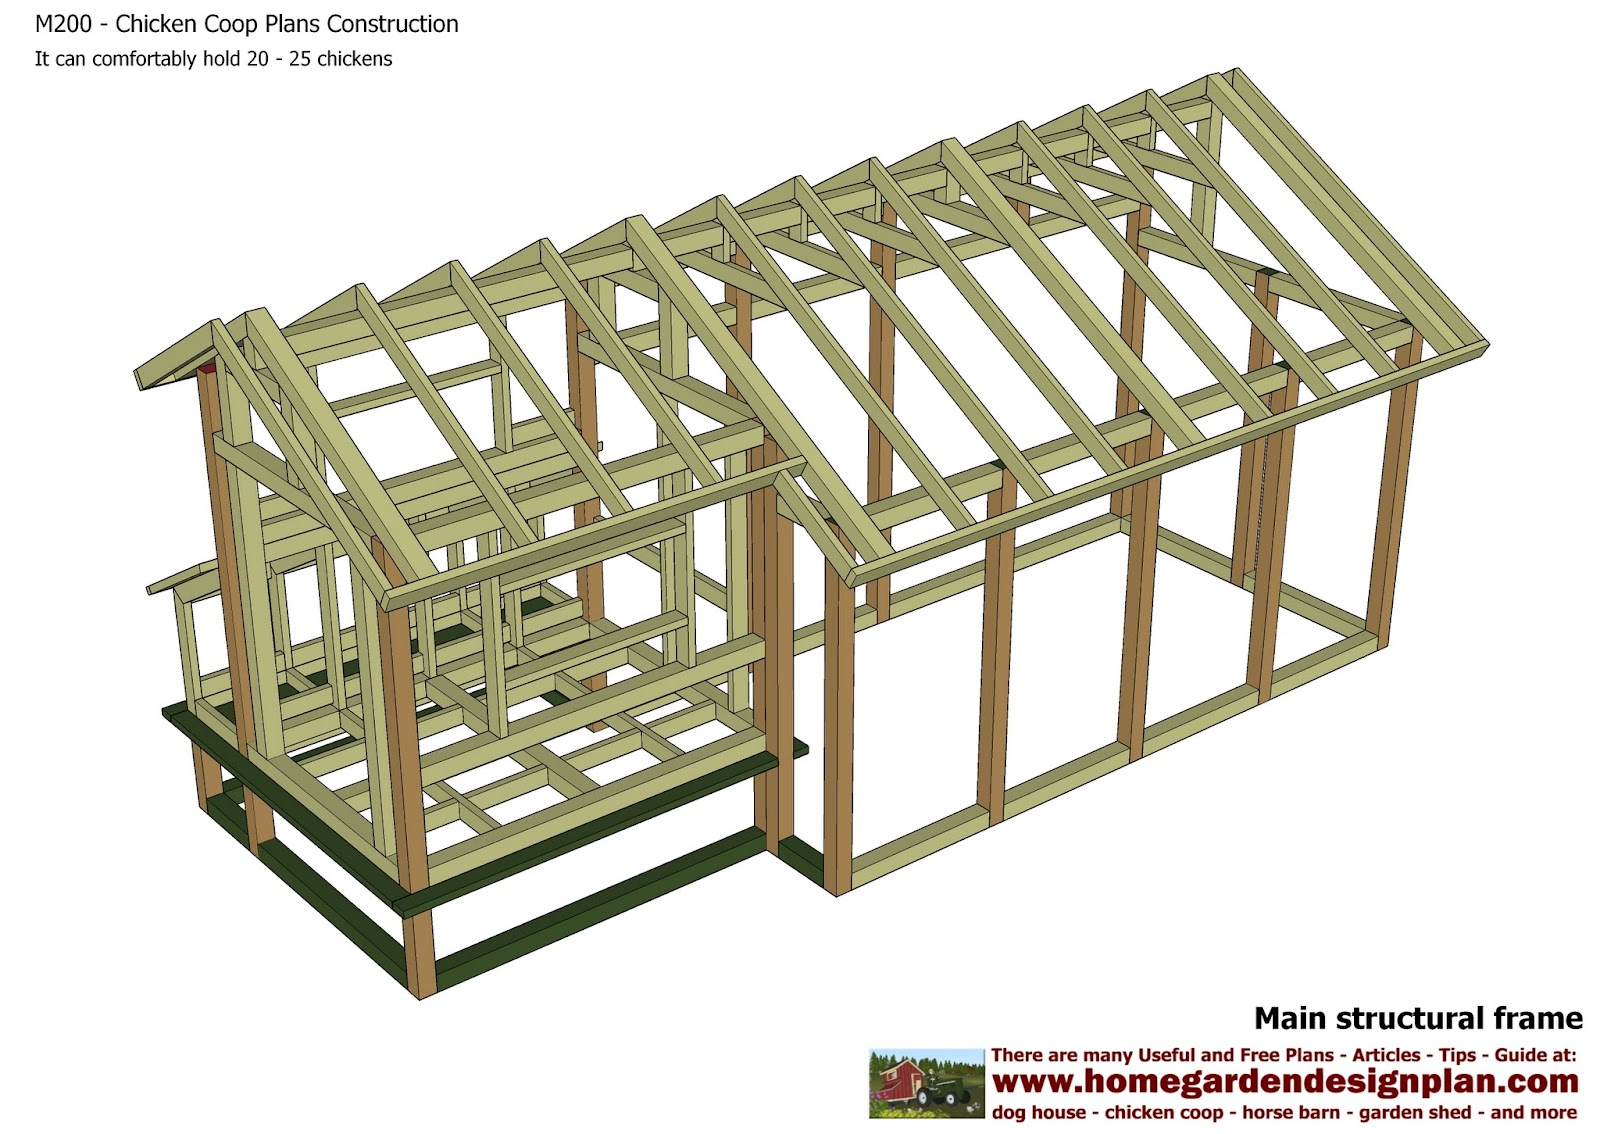 Guide to Get Plans for a frame chicken coop - Lucas